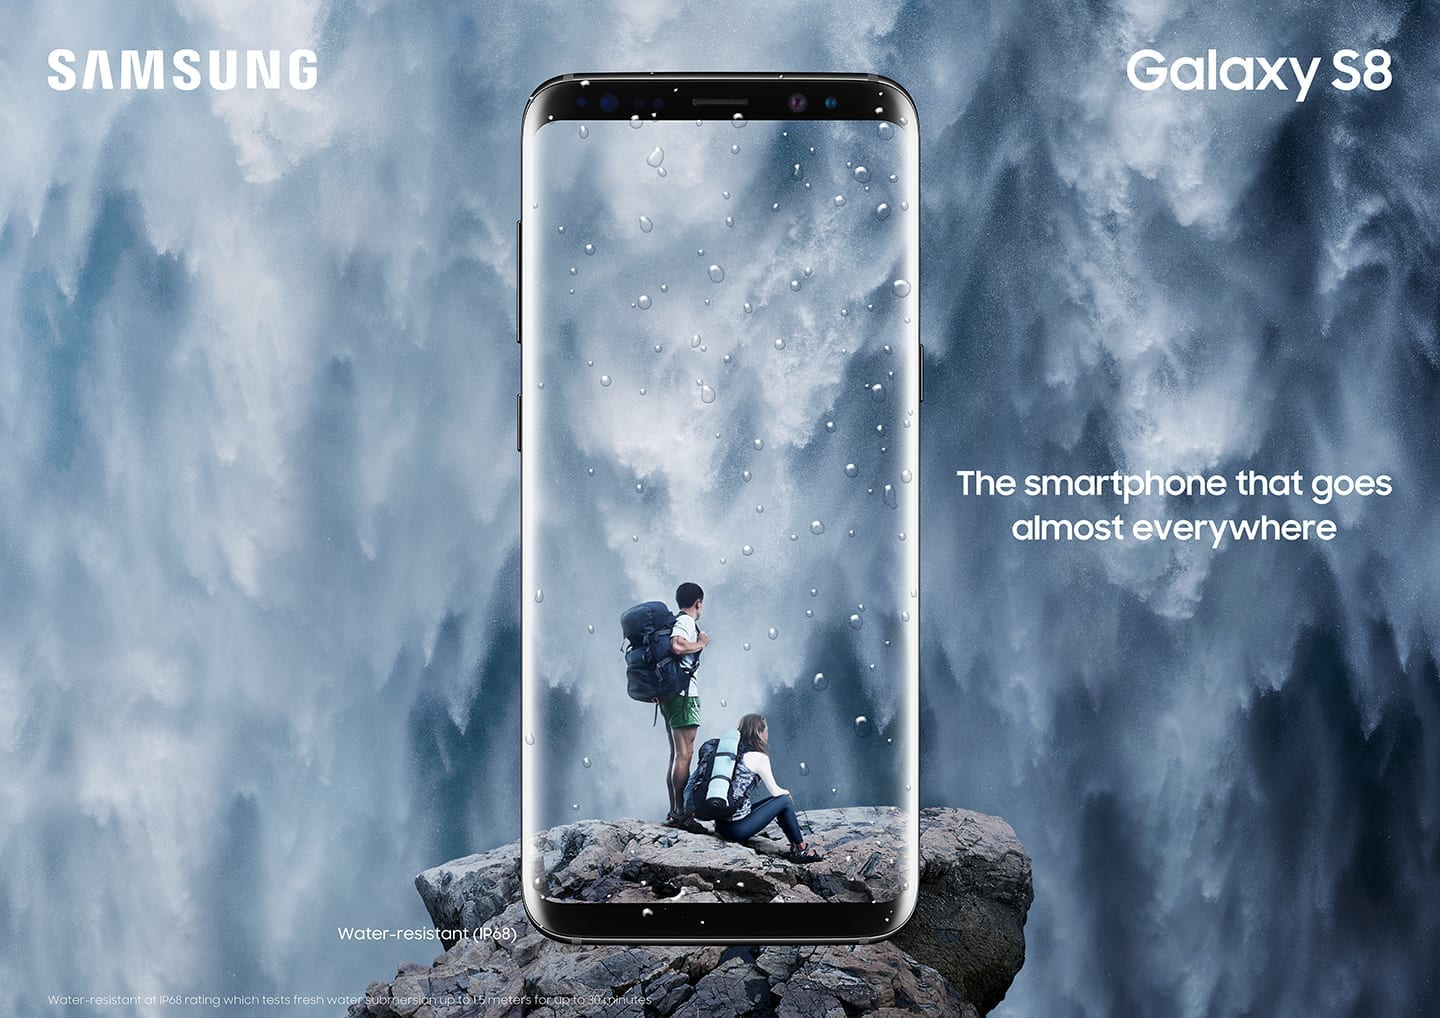 GalaxyS8-marketing-6